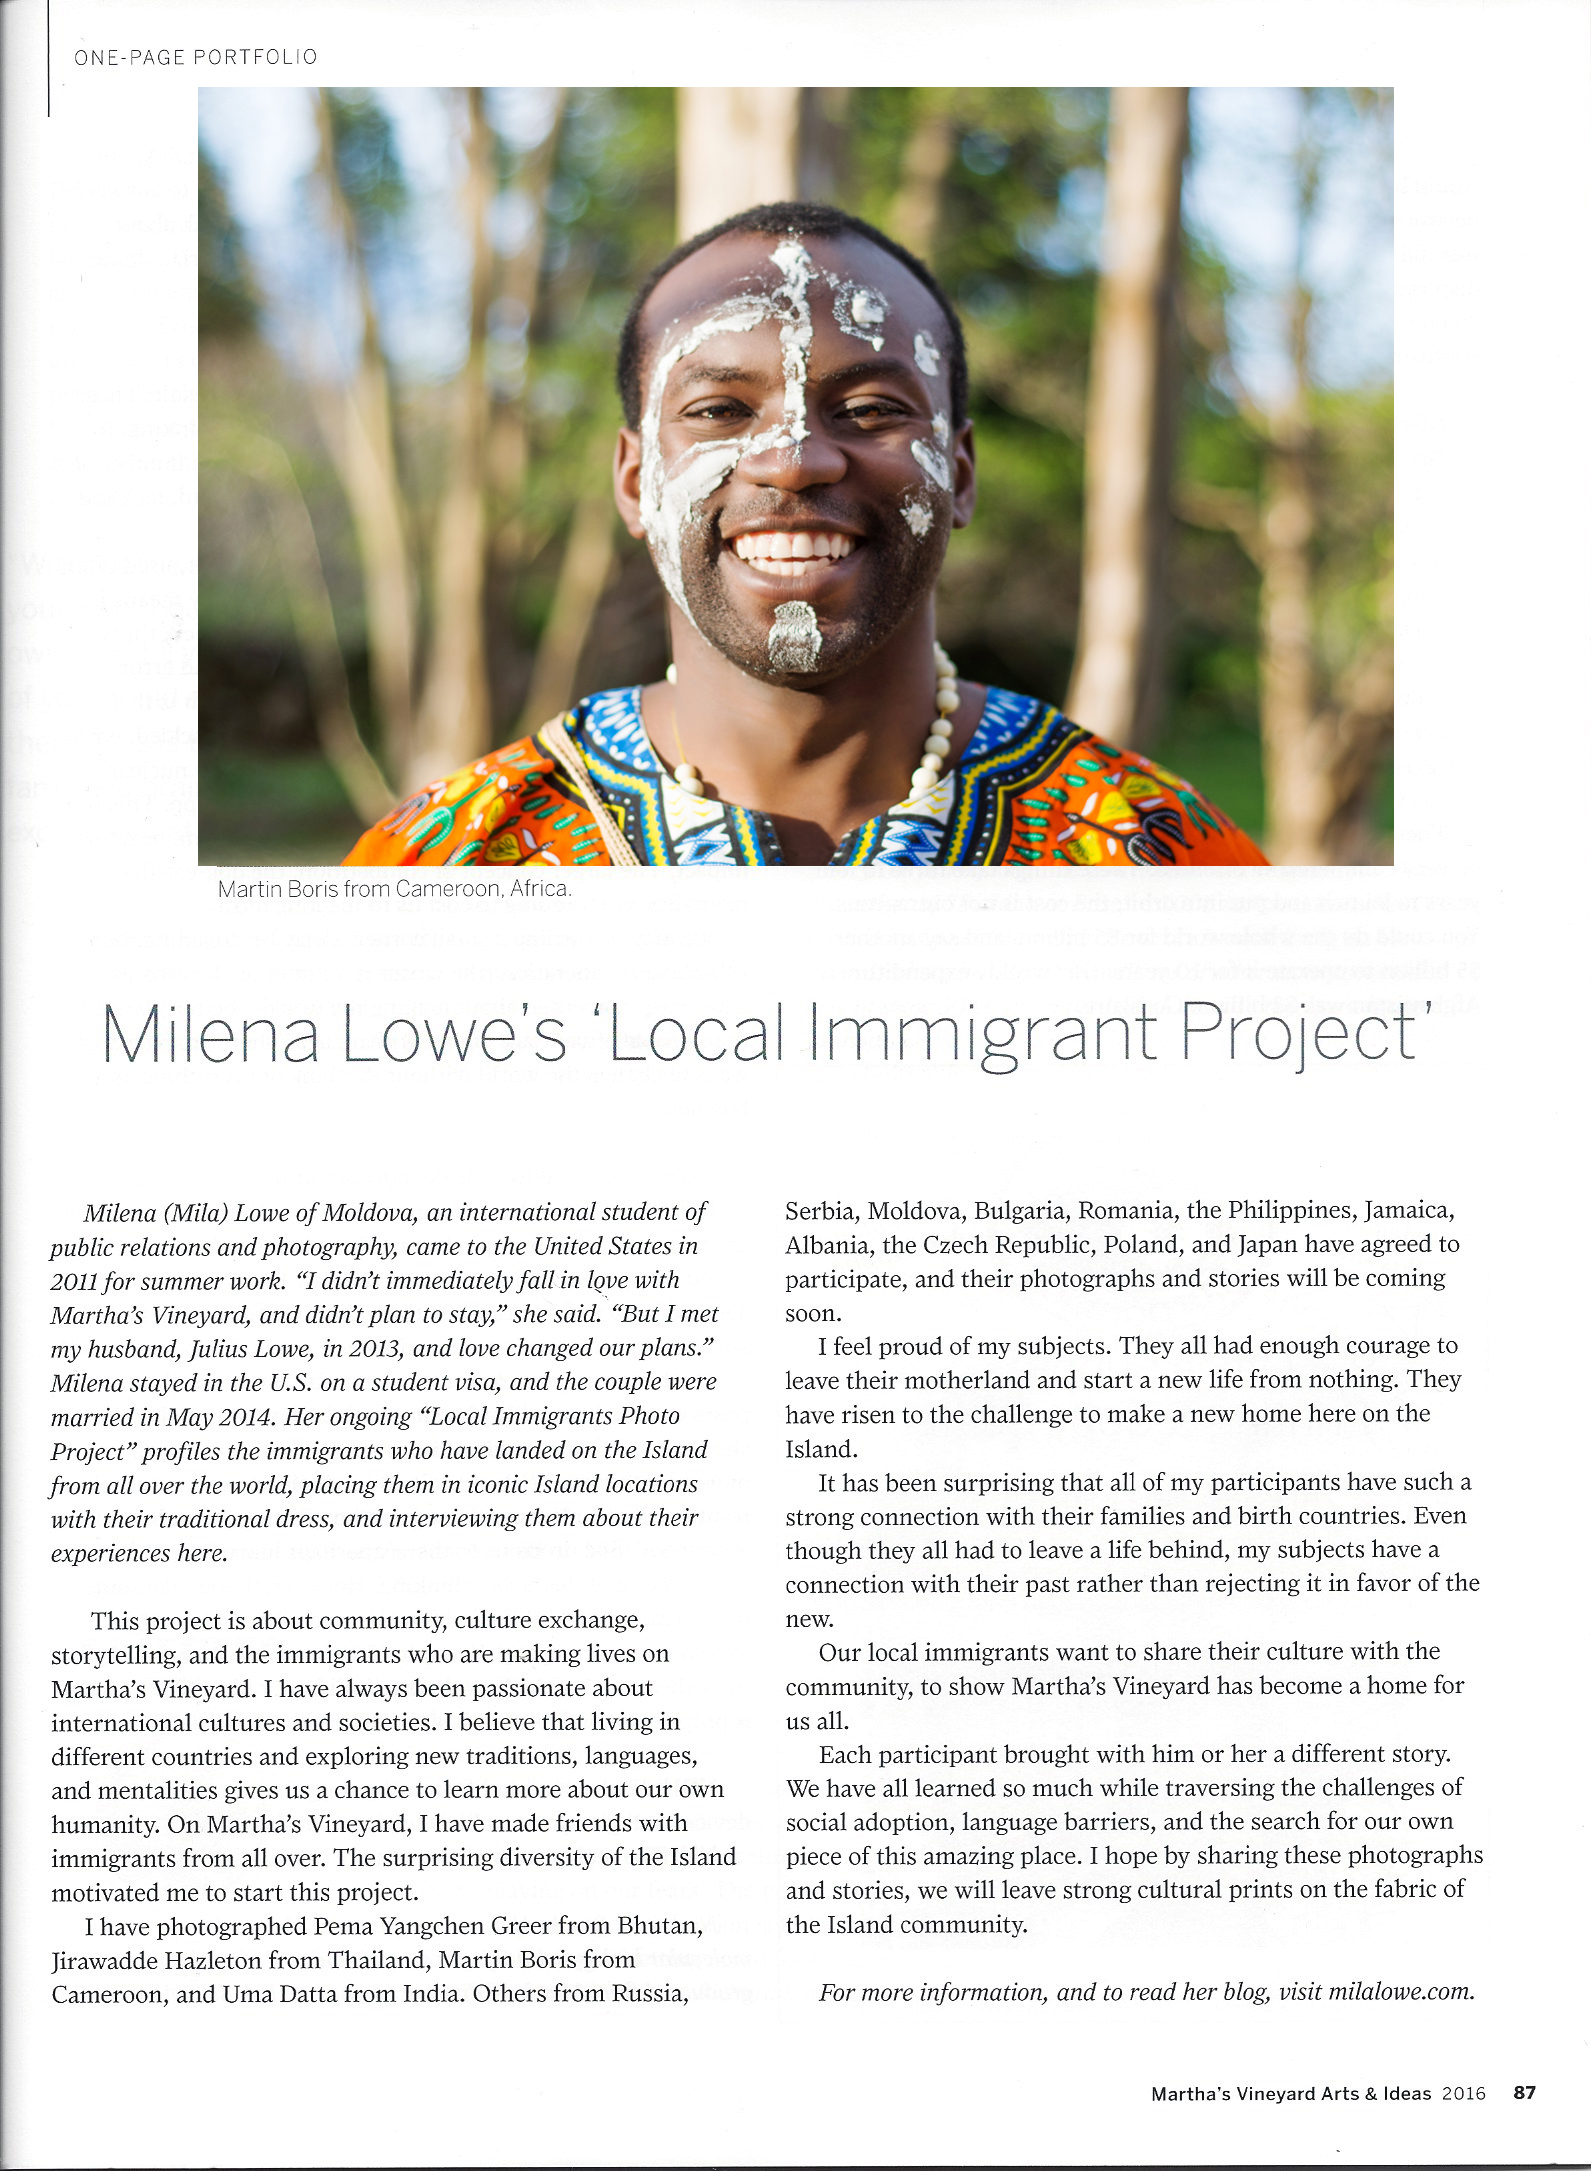 marthas_vineyard_arts_and_ideas_magazine_by_mv_times_about_local_immigrants_project_by_mila_lowe_page_1.jpg